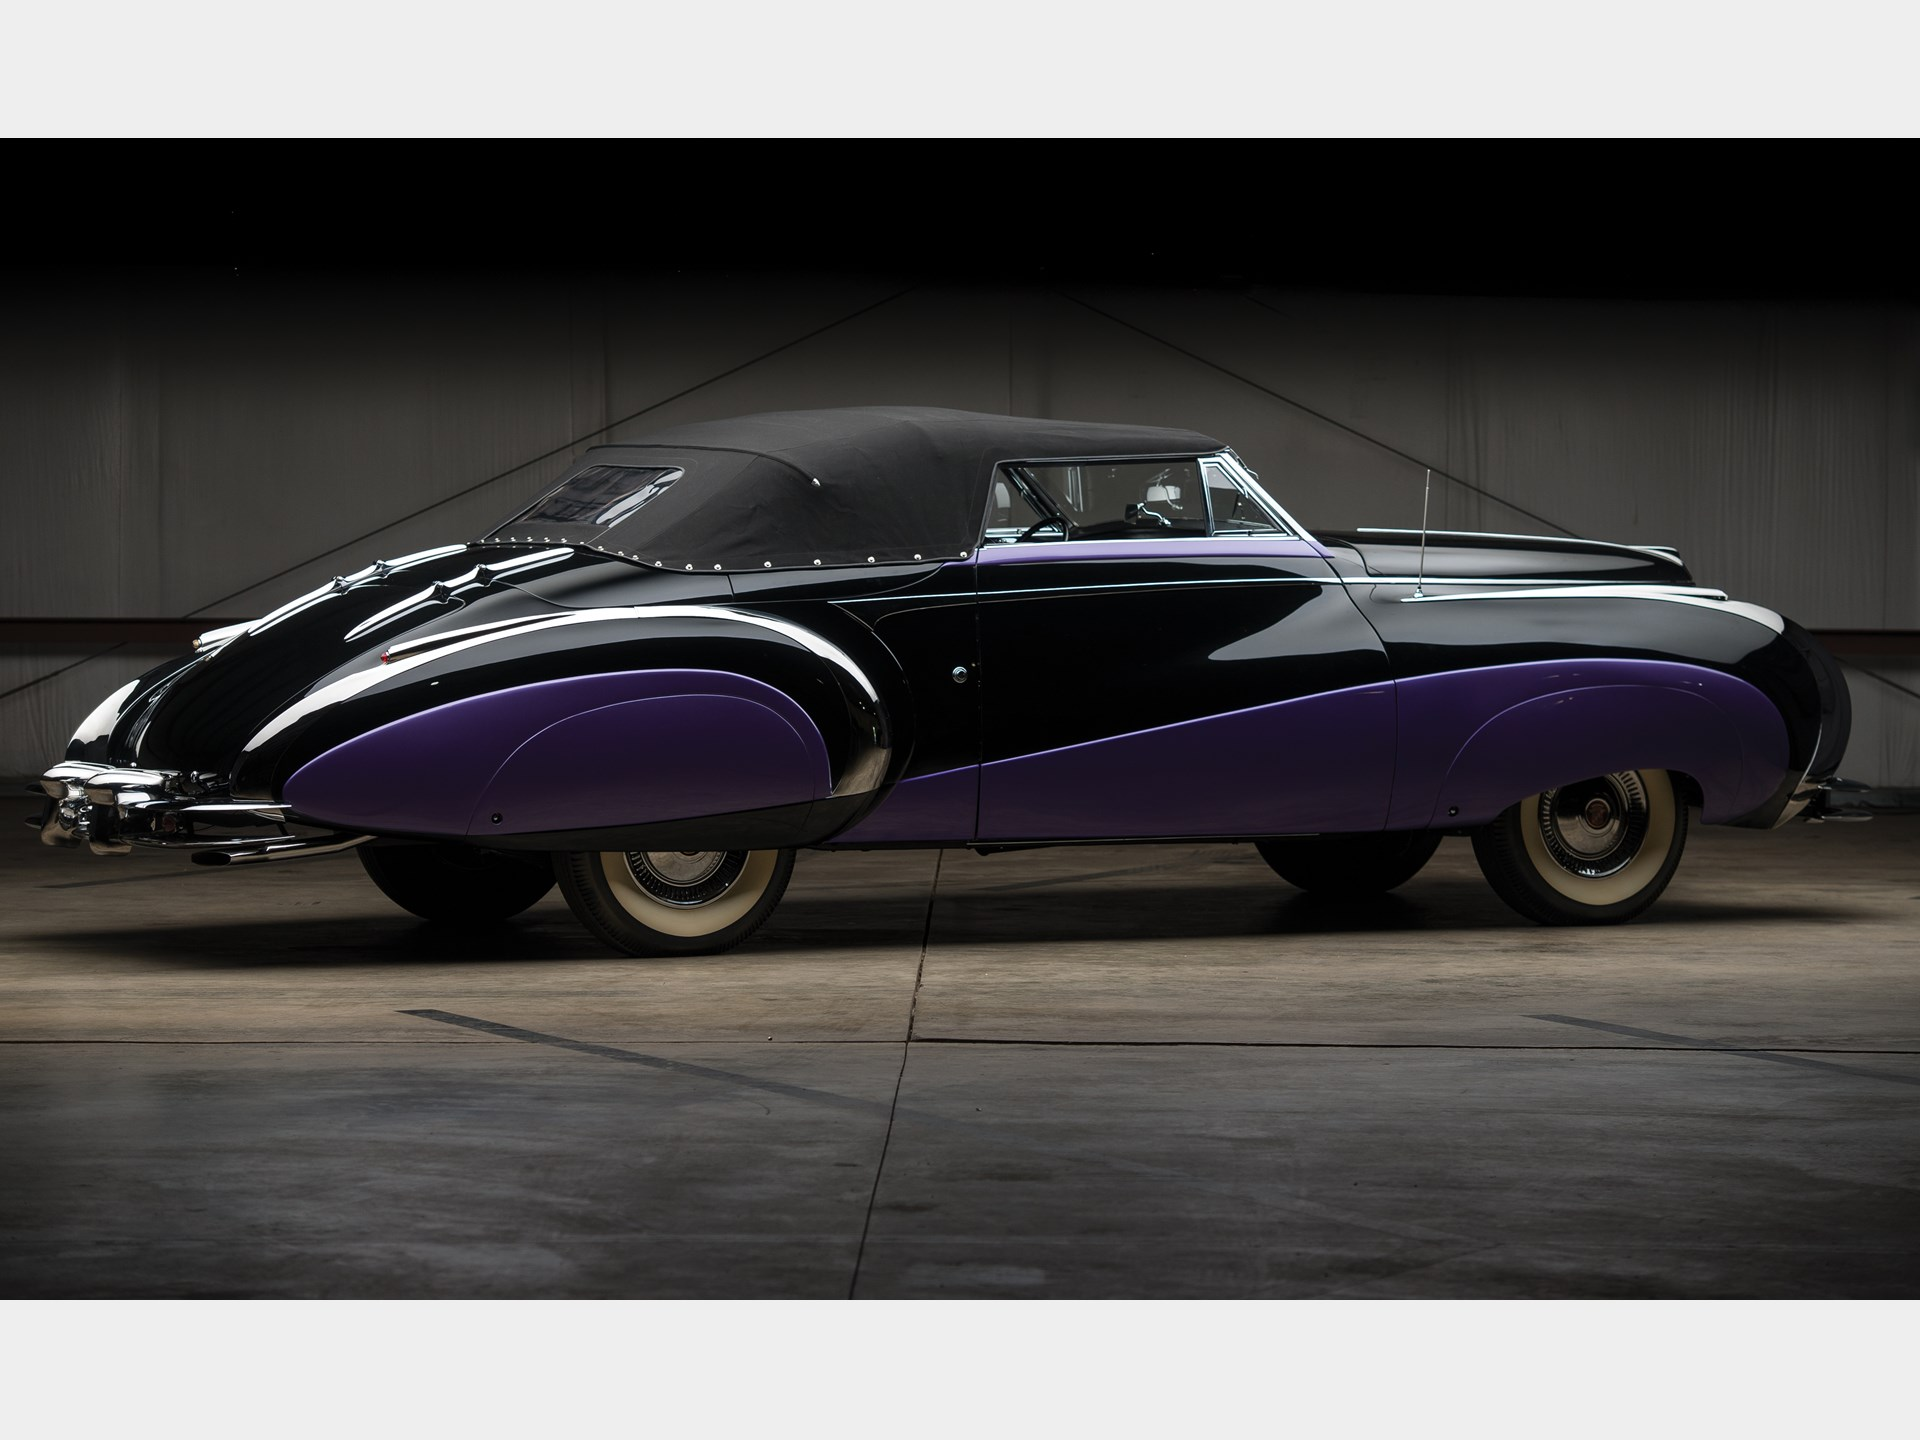 1948 Cadillac Series 62 Cabriolet by Saoutchik